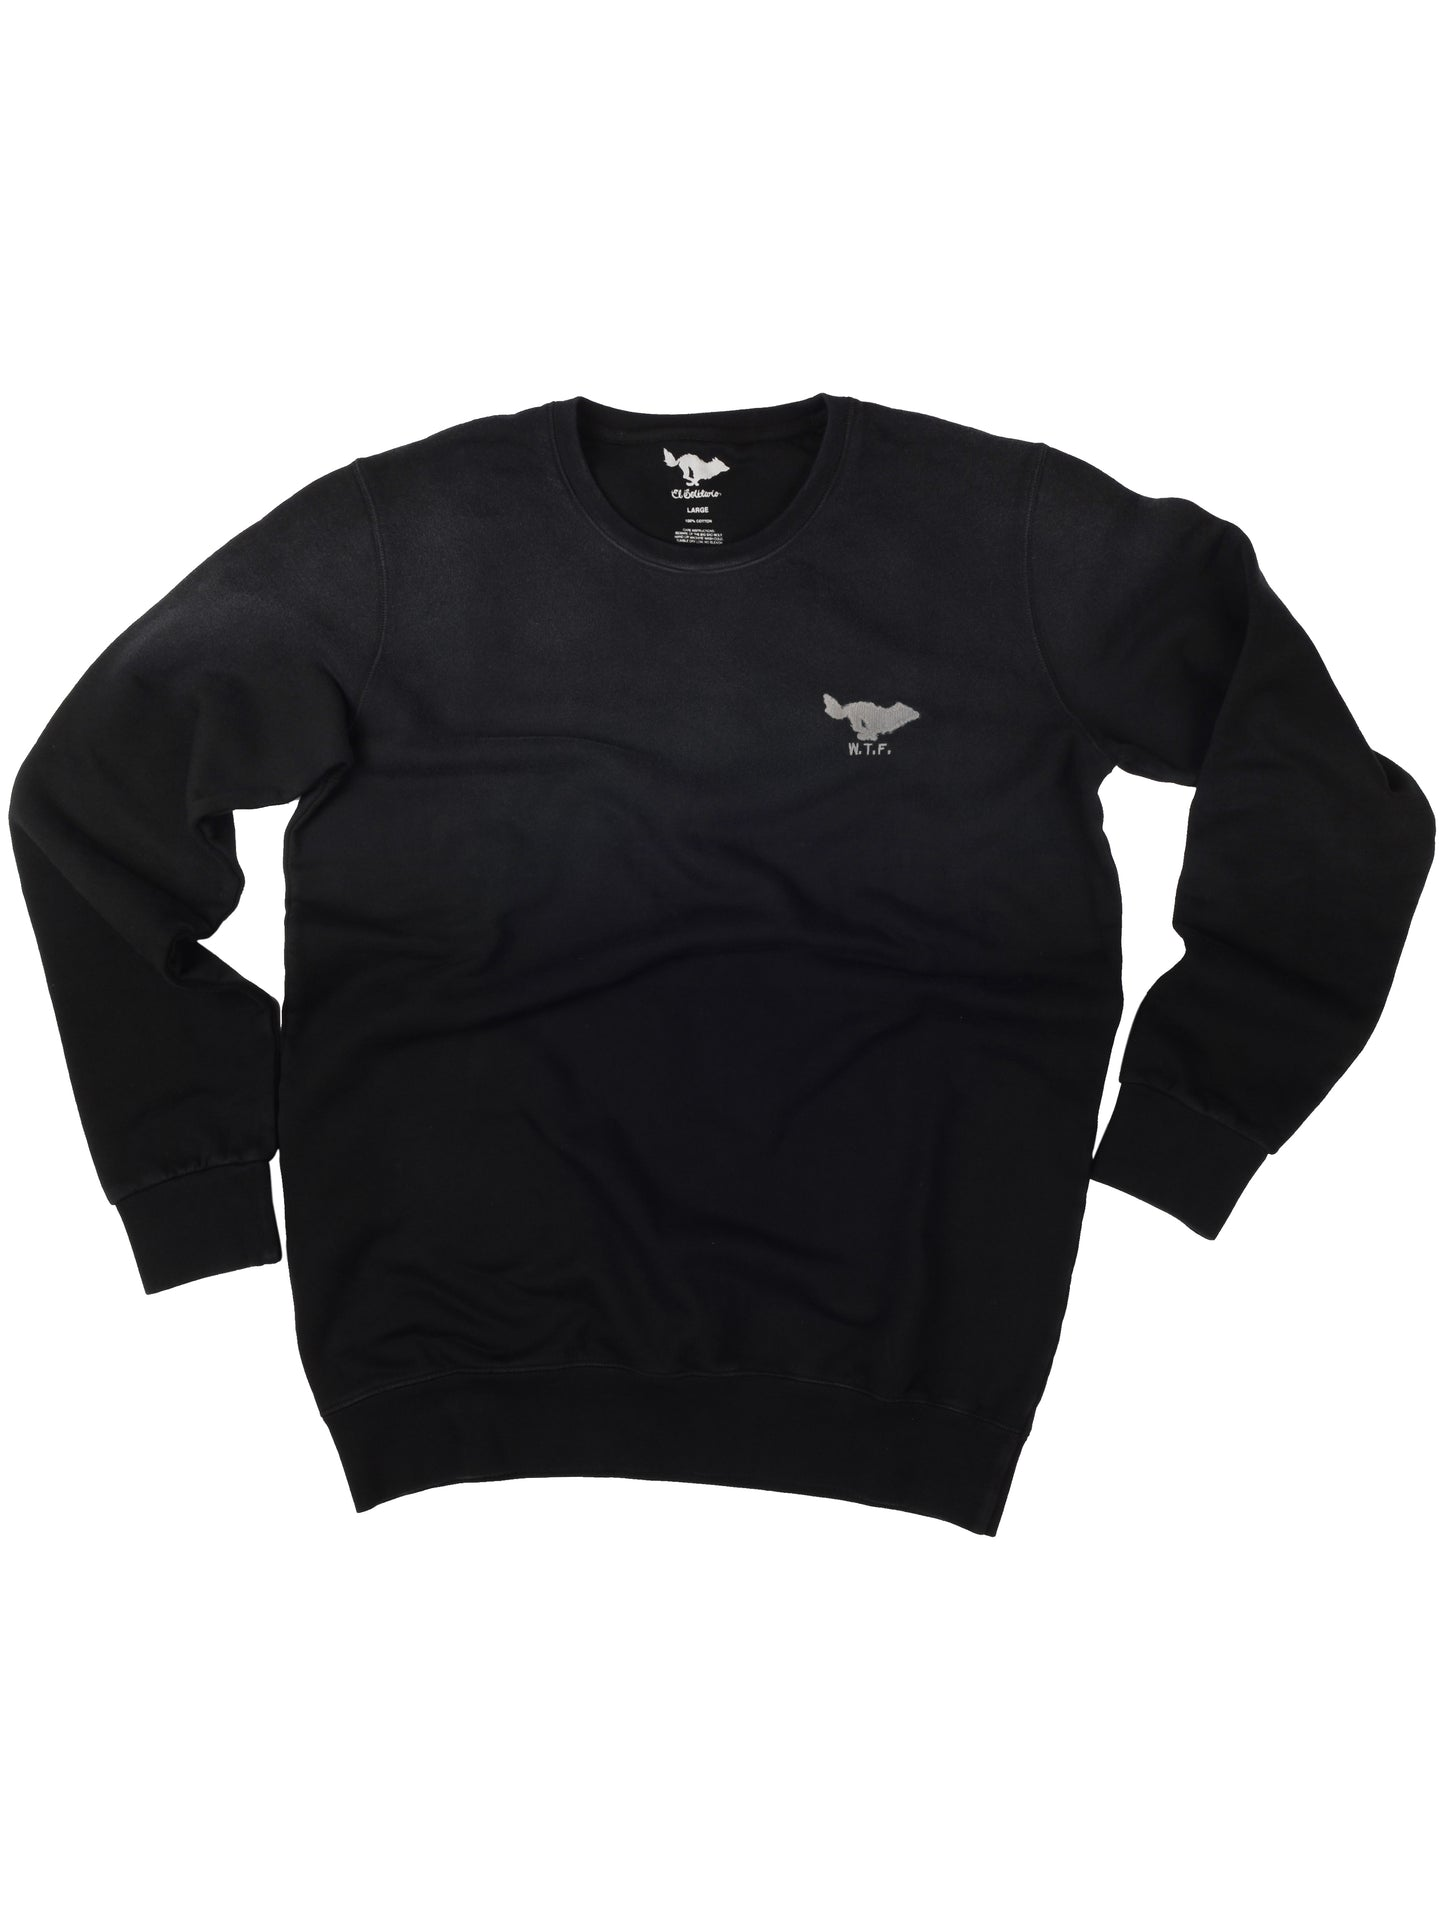 El Solitario Basic Embroidered Black Sweatshirt. Front